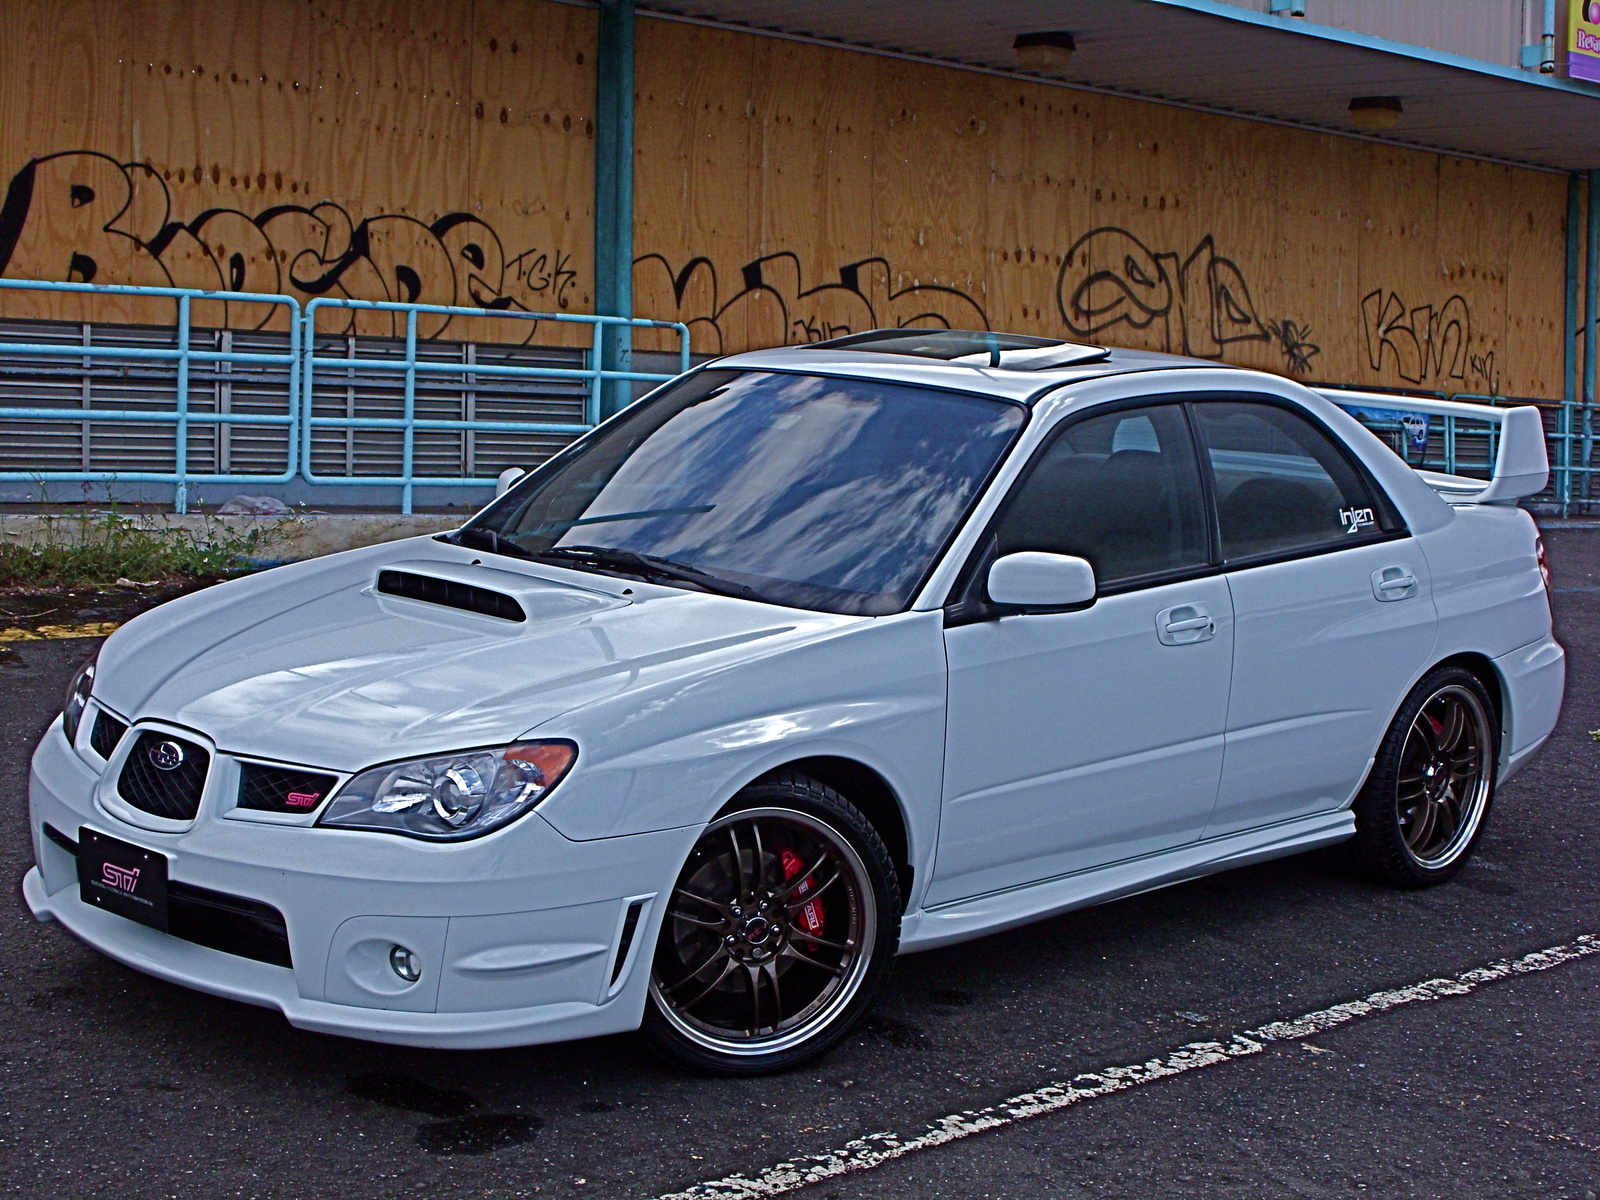 2006 subaru impreza wrx sti spec c type ra r related. Black Bedroom Furniture Sets. Home Design Ideas